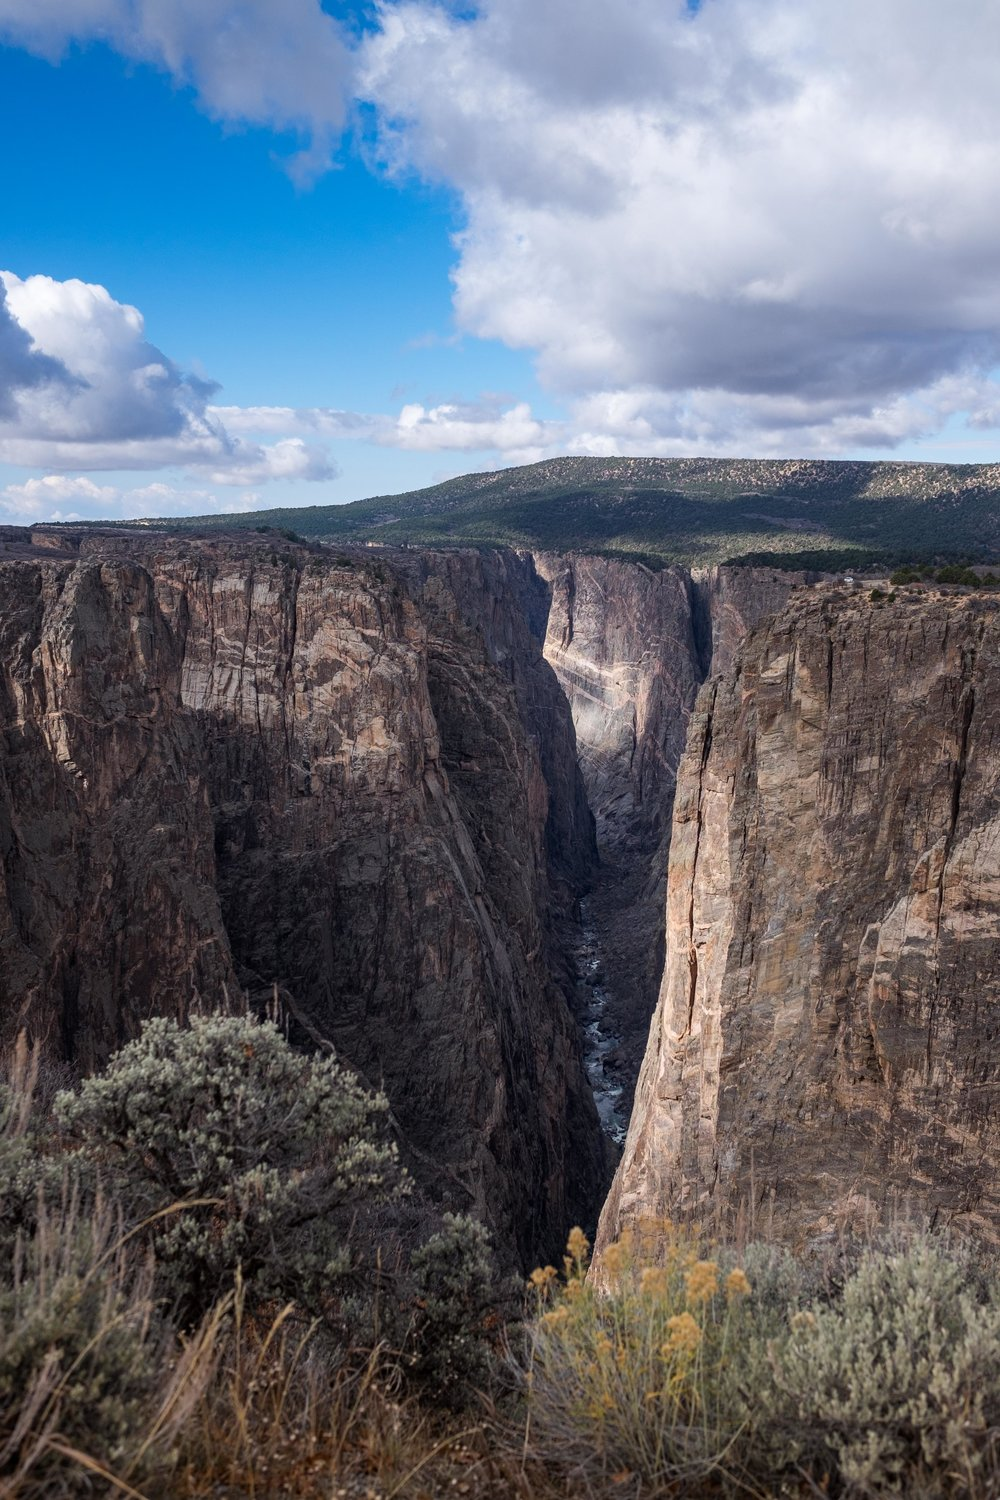 20161106-JI-Black Canyon of the Gunnison National Park-00048.jpg